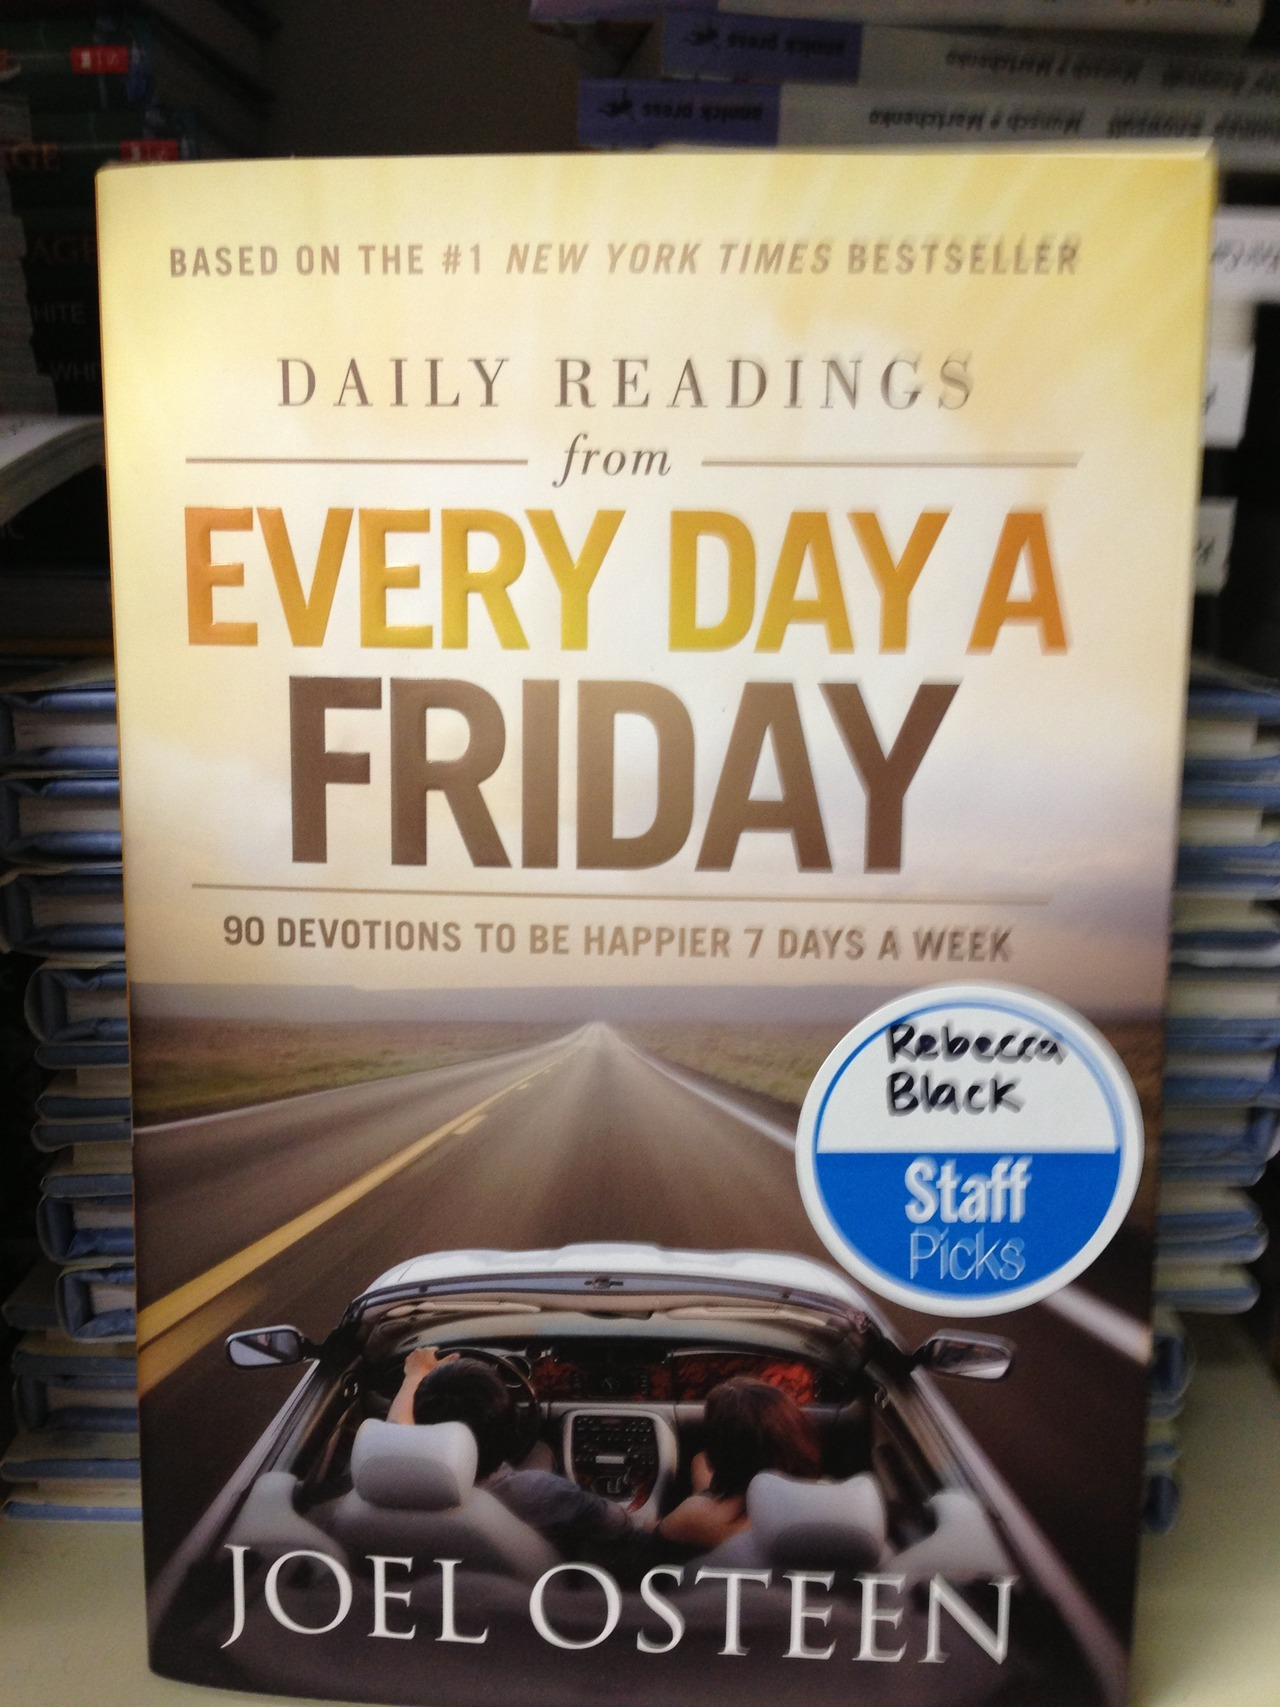 Rebecca Black approves of this book.